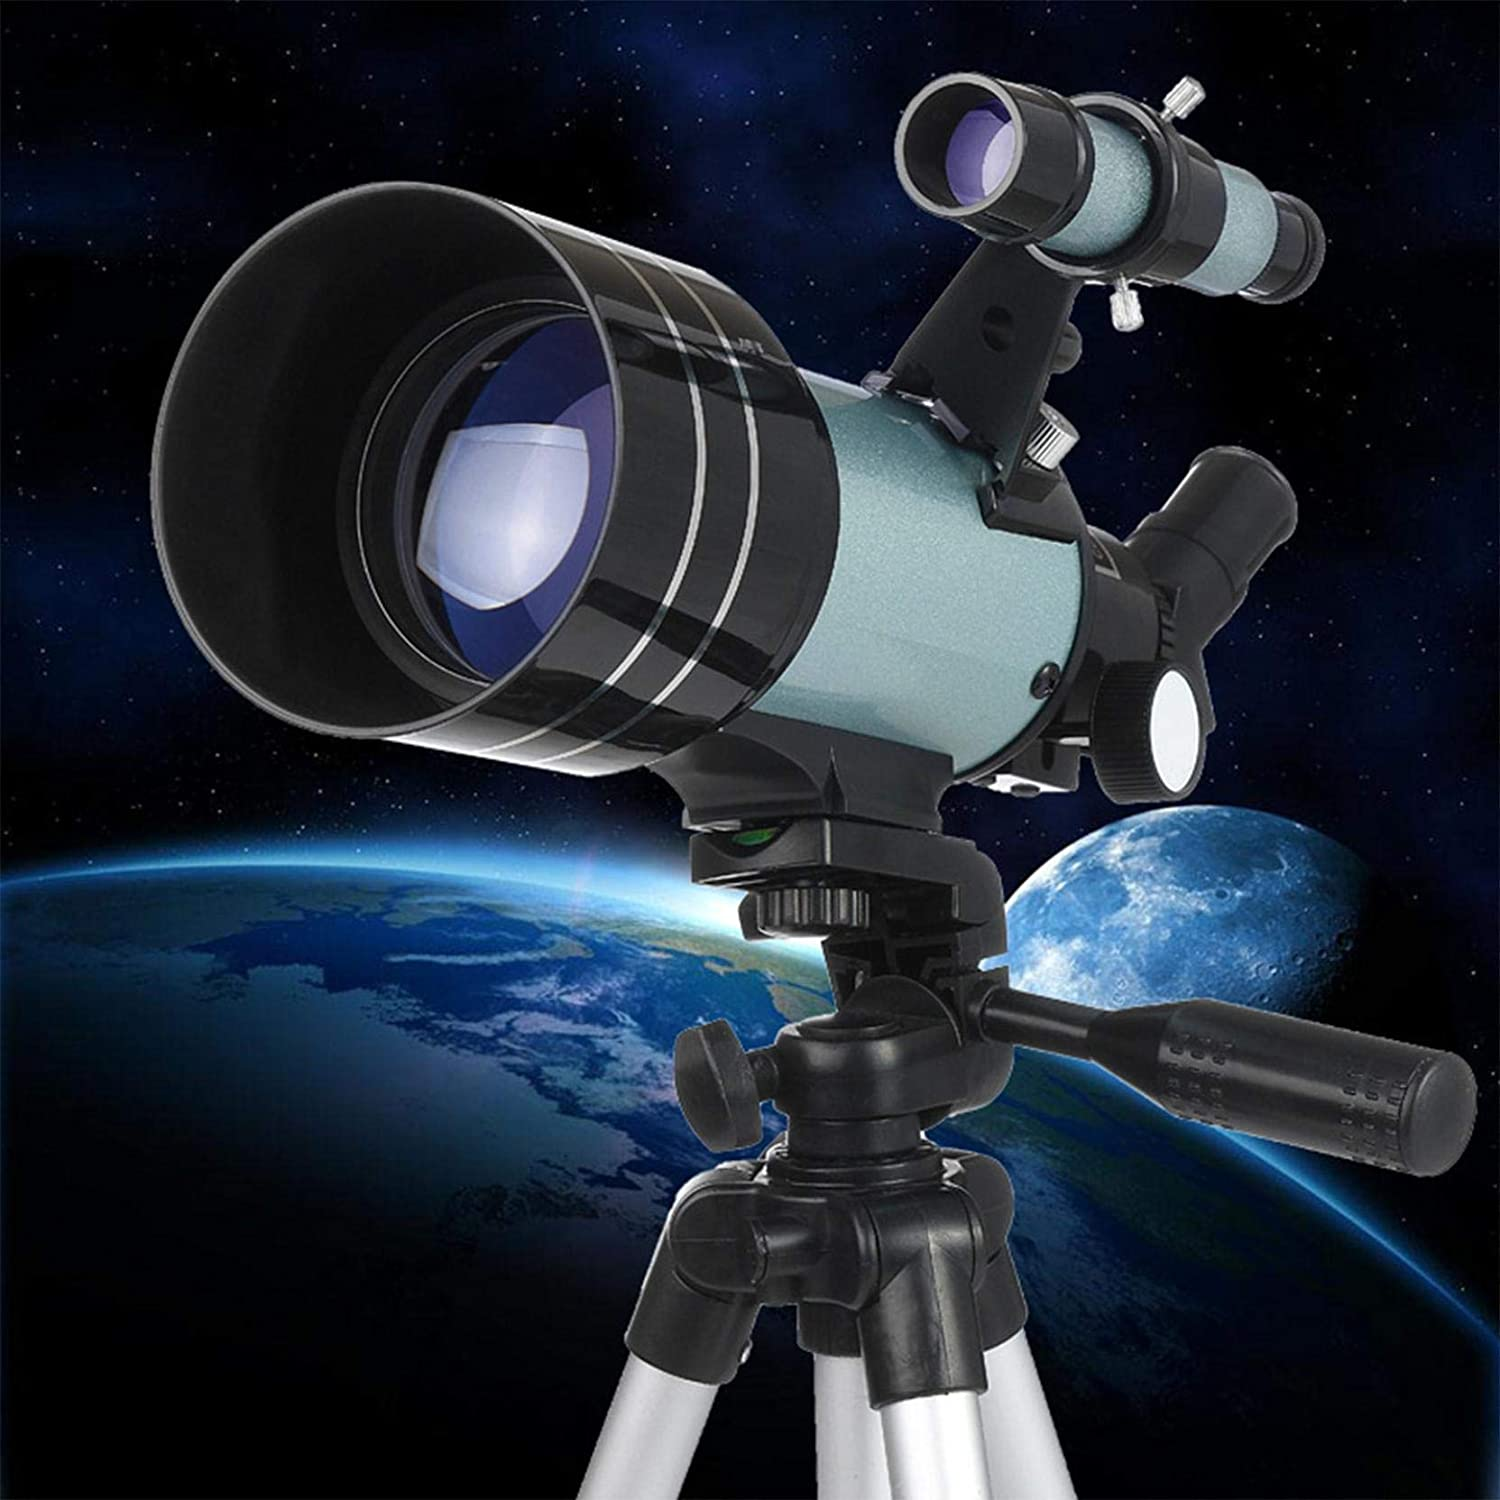 Astronomy Telescopes for Adults & Kids, 70mm Aperture Astronomy Beginners Telescopes with F30070 High Bracket Professional Stargazing, High Definition Night Vision Entry Telescope (Sliver)